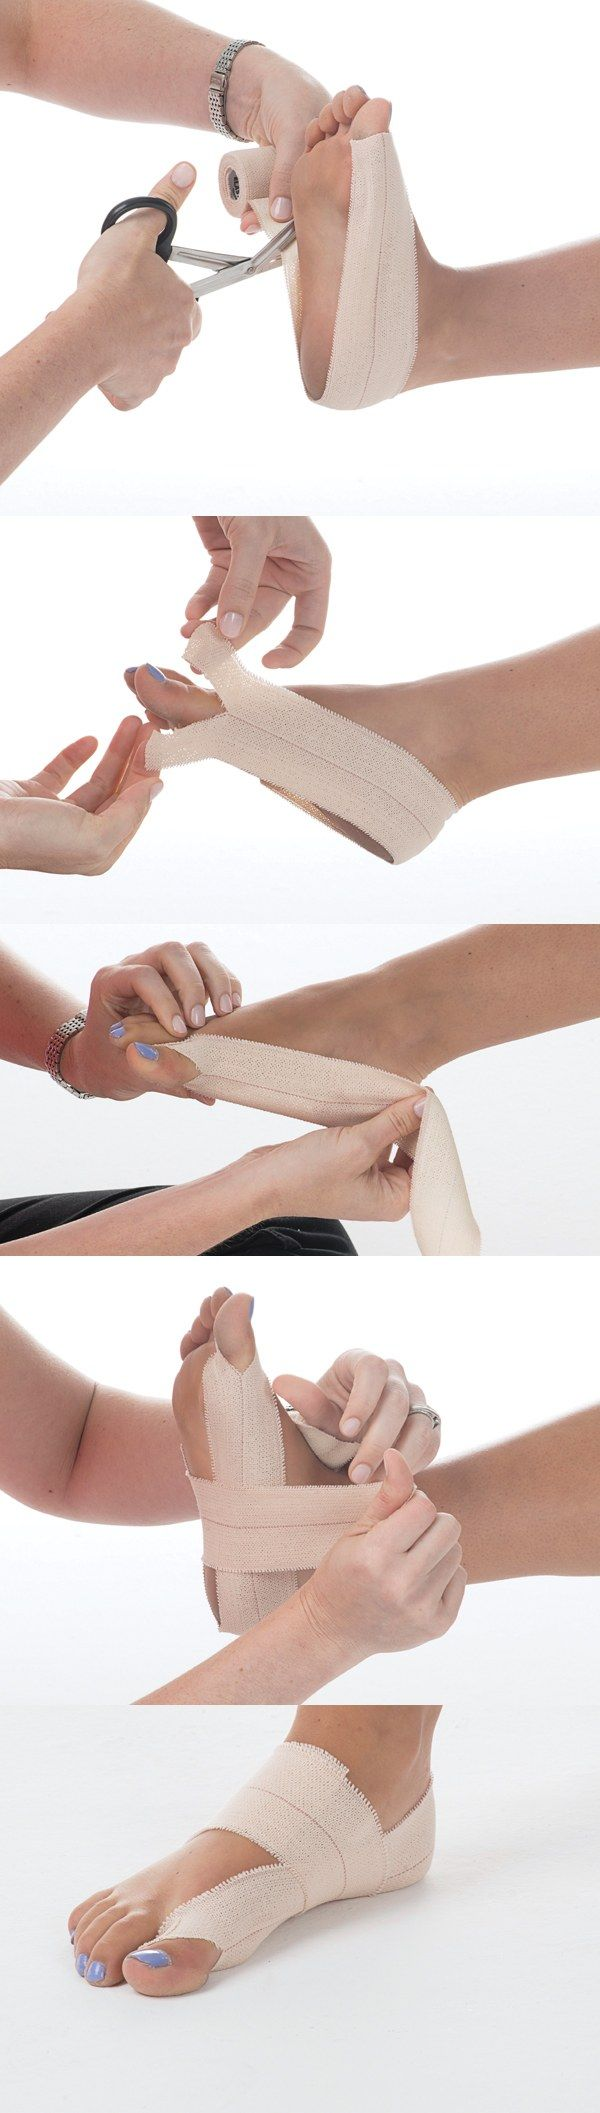 how to use kt tape for plantar fasciitis